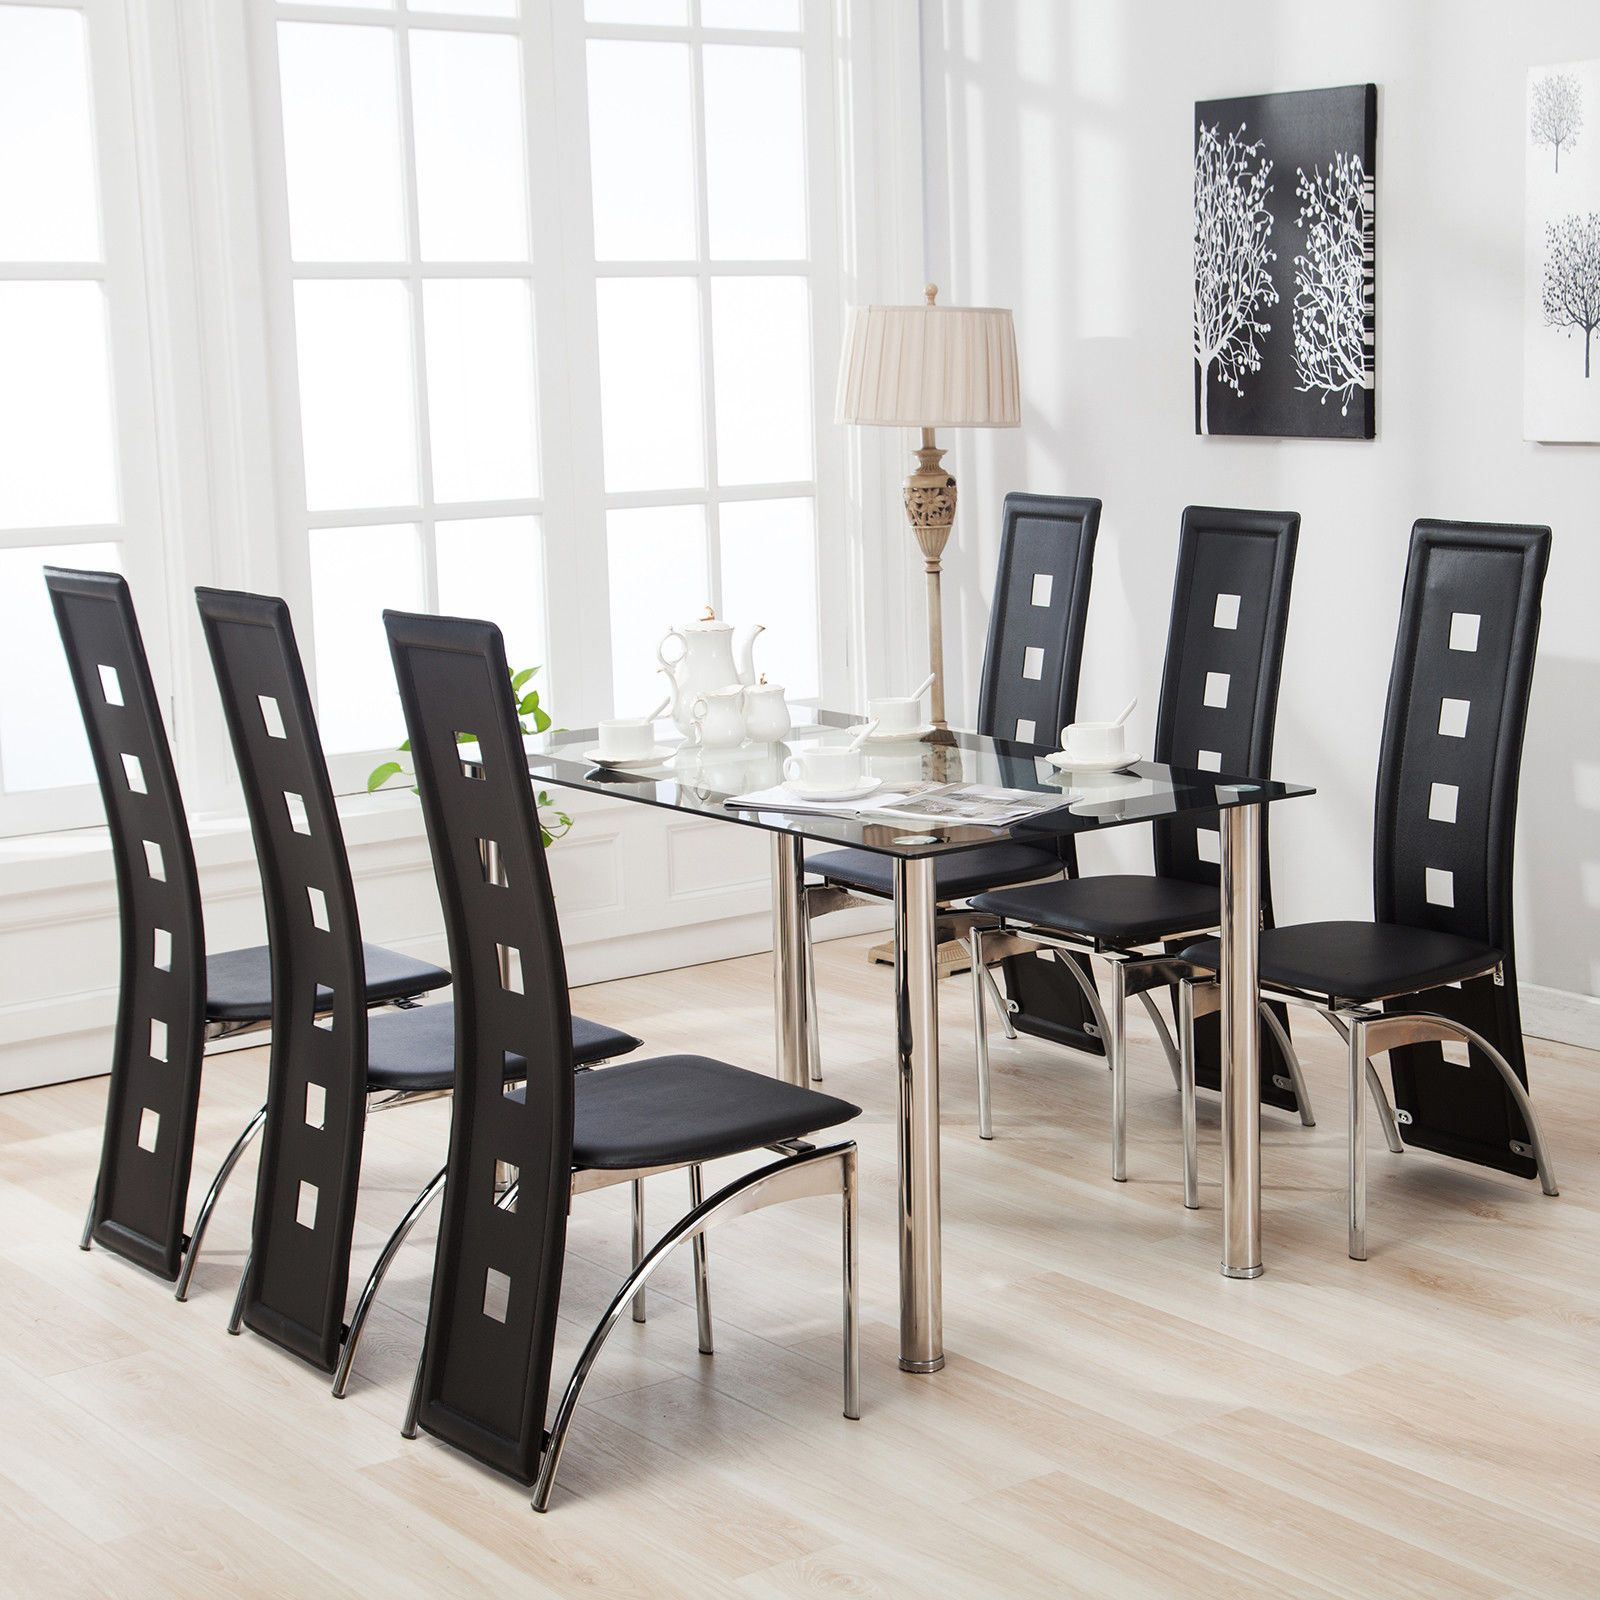 Details About 7 Piece Dining Table Set And 6 Chairs Glass Top